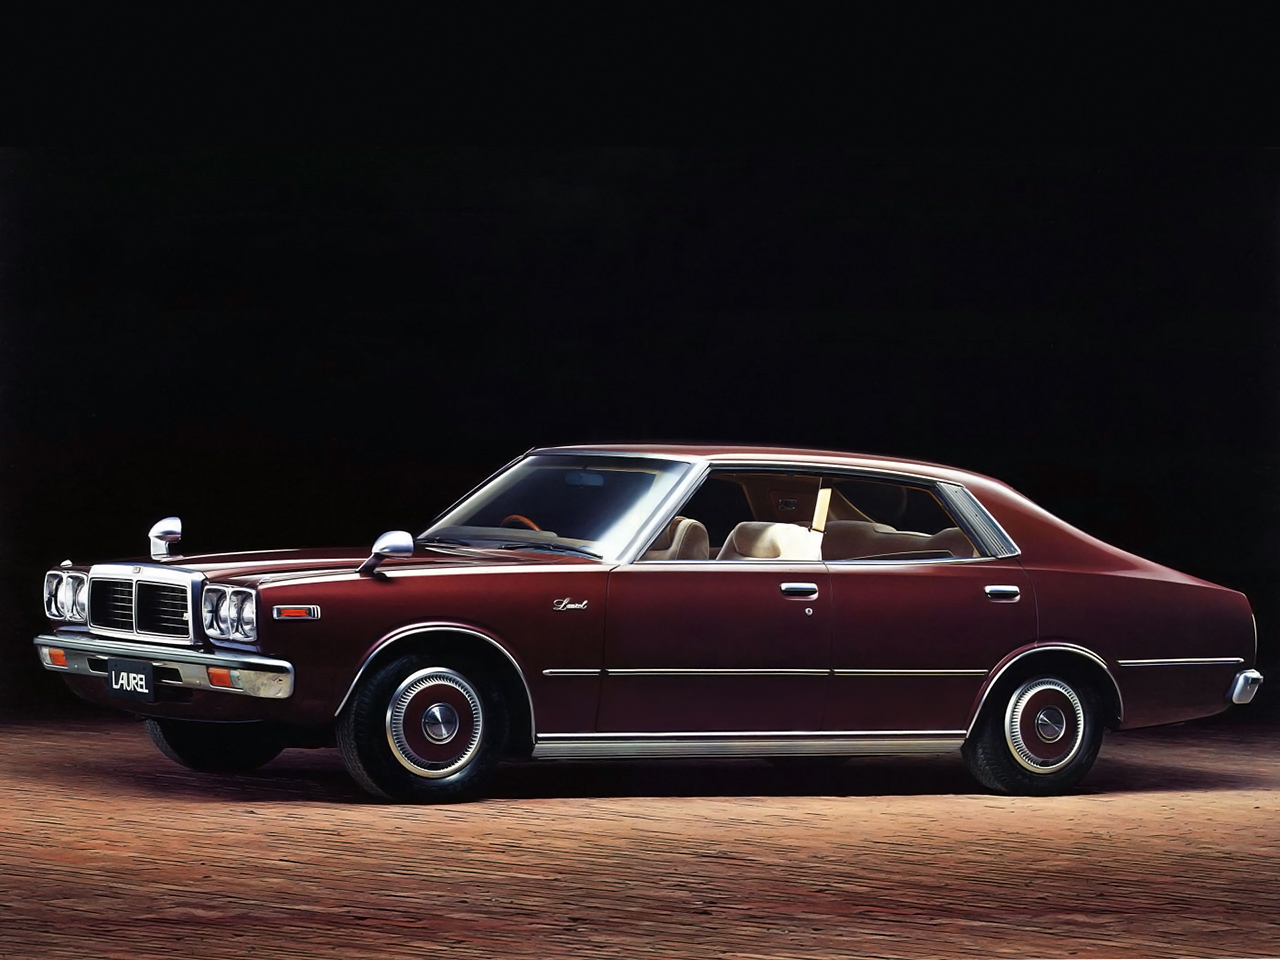 Nissan laurel photo - 7